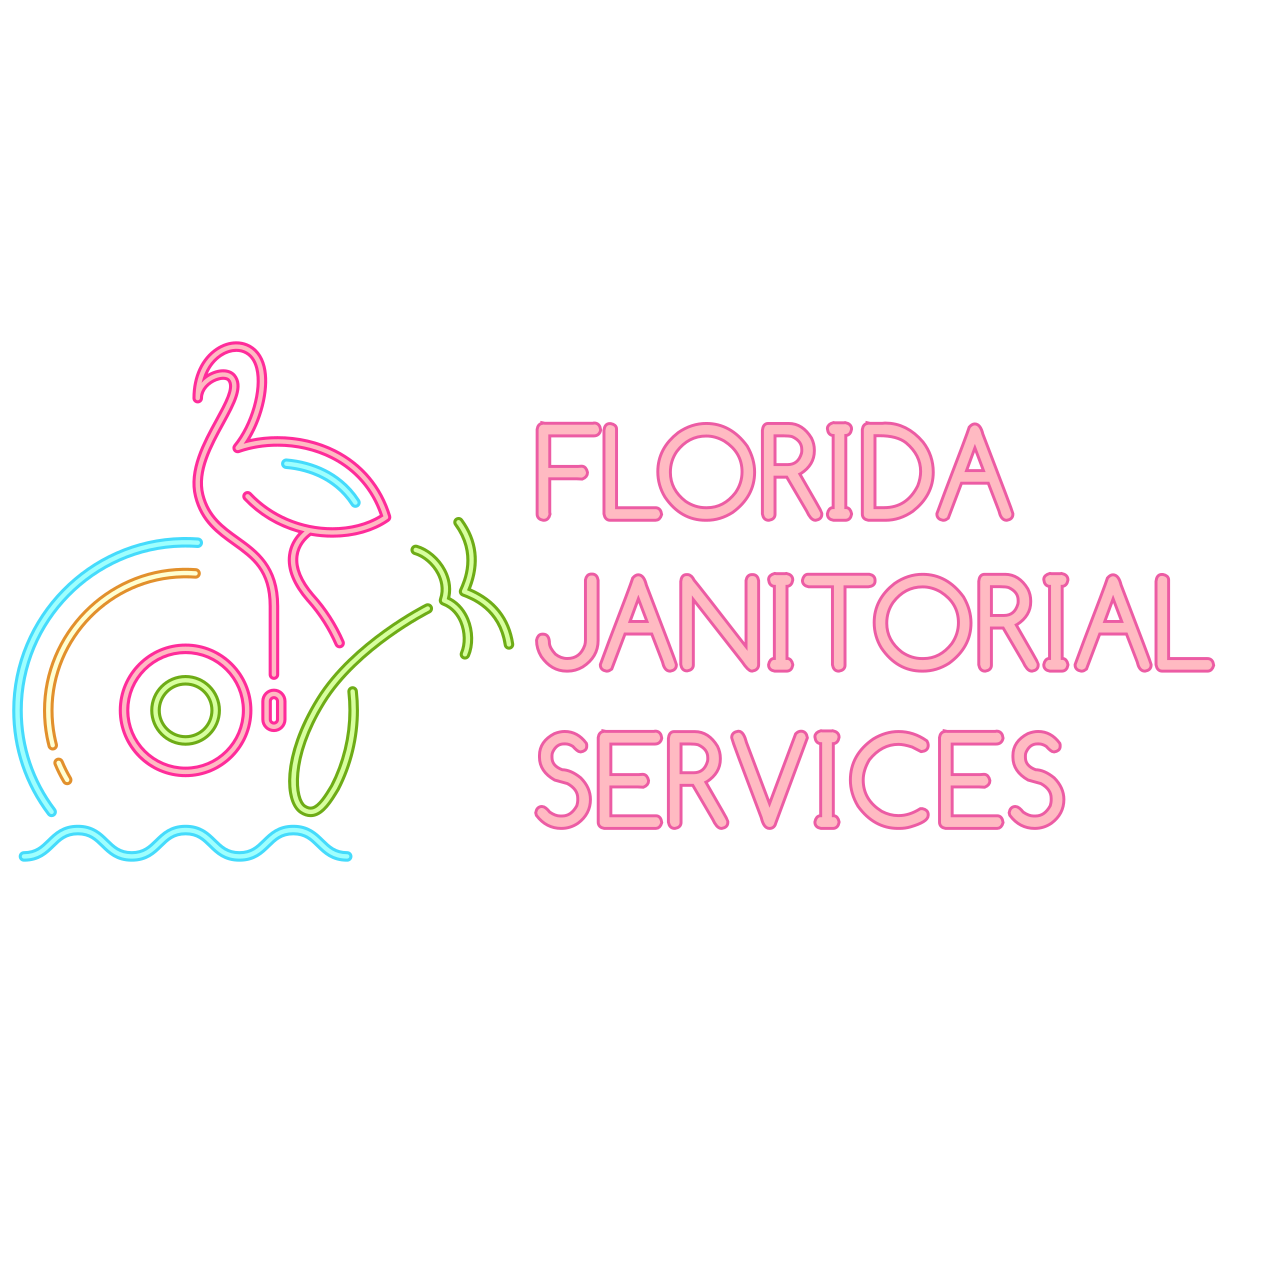 Florida Janitorial Services